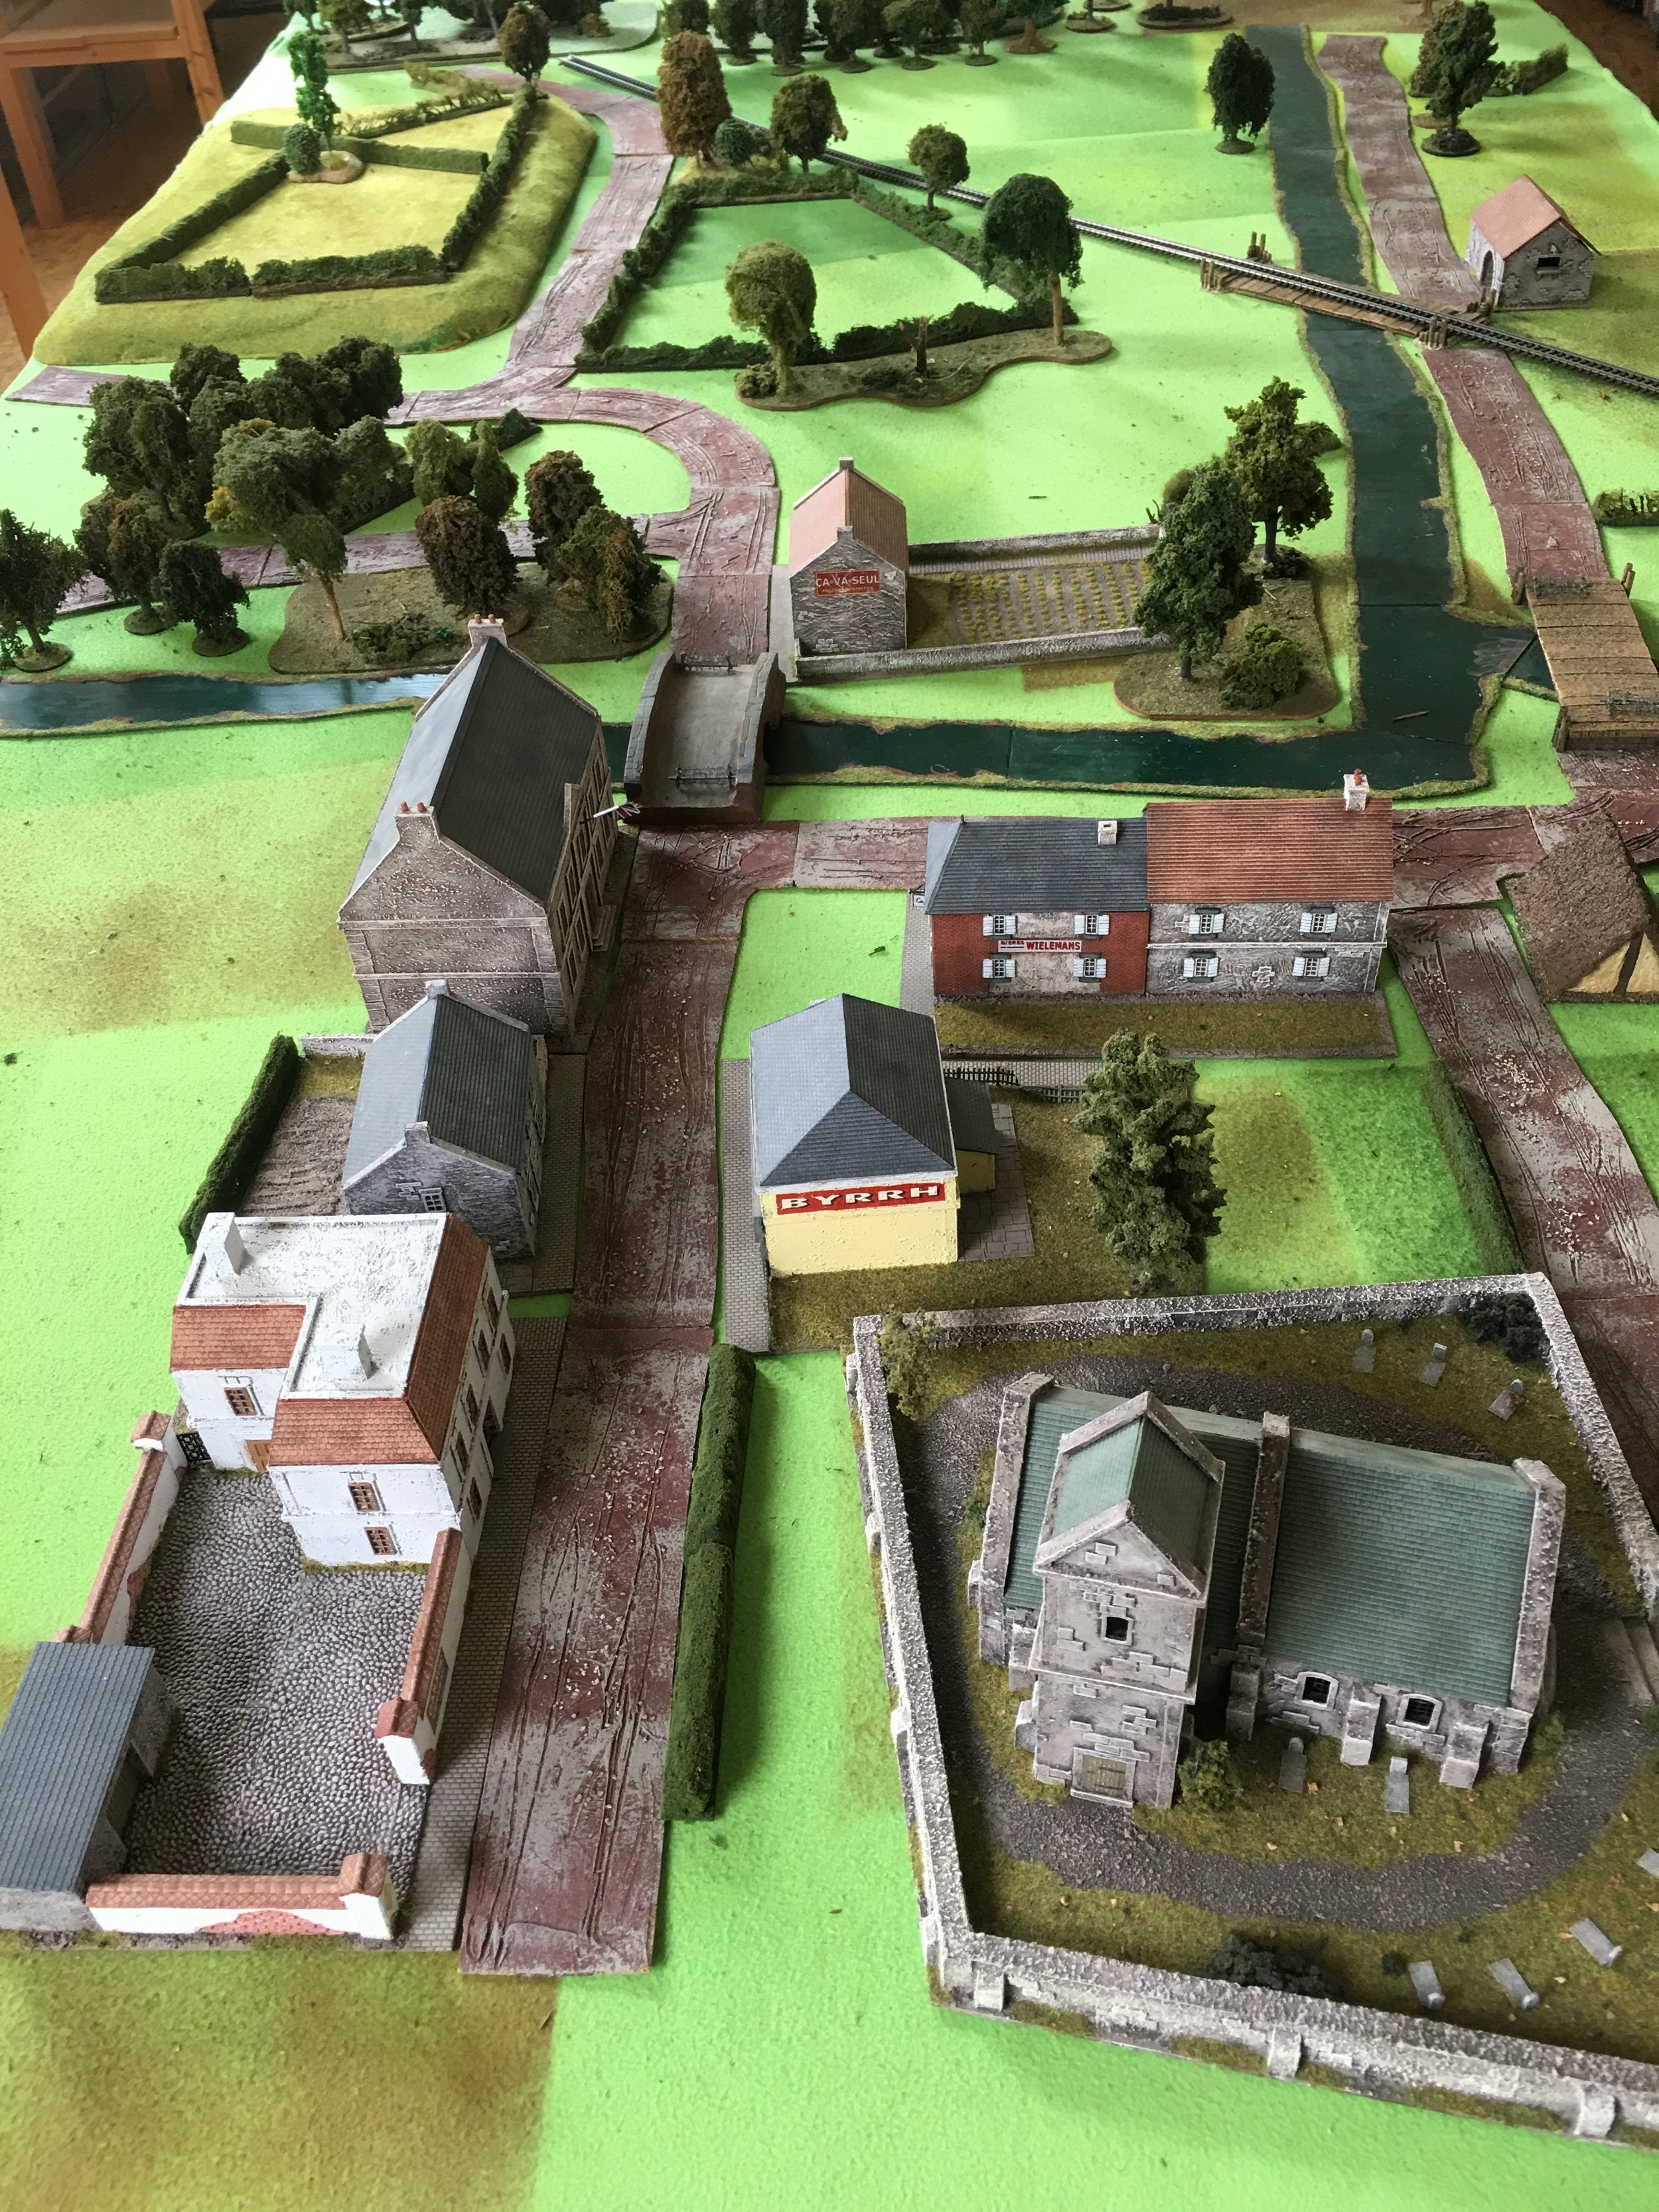 Before the battle. The outskirts of Pevensy with the two vital bridges.